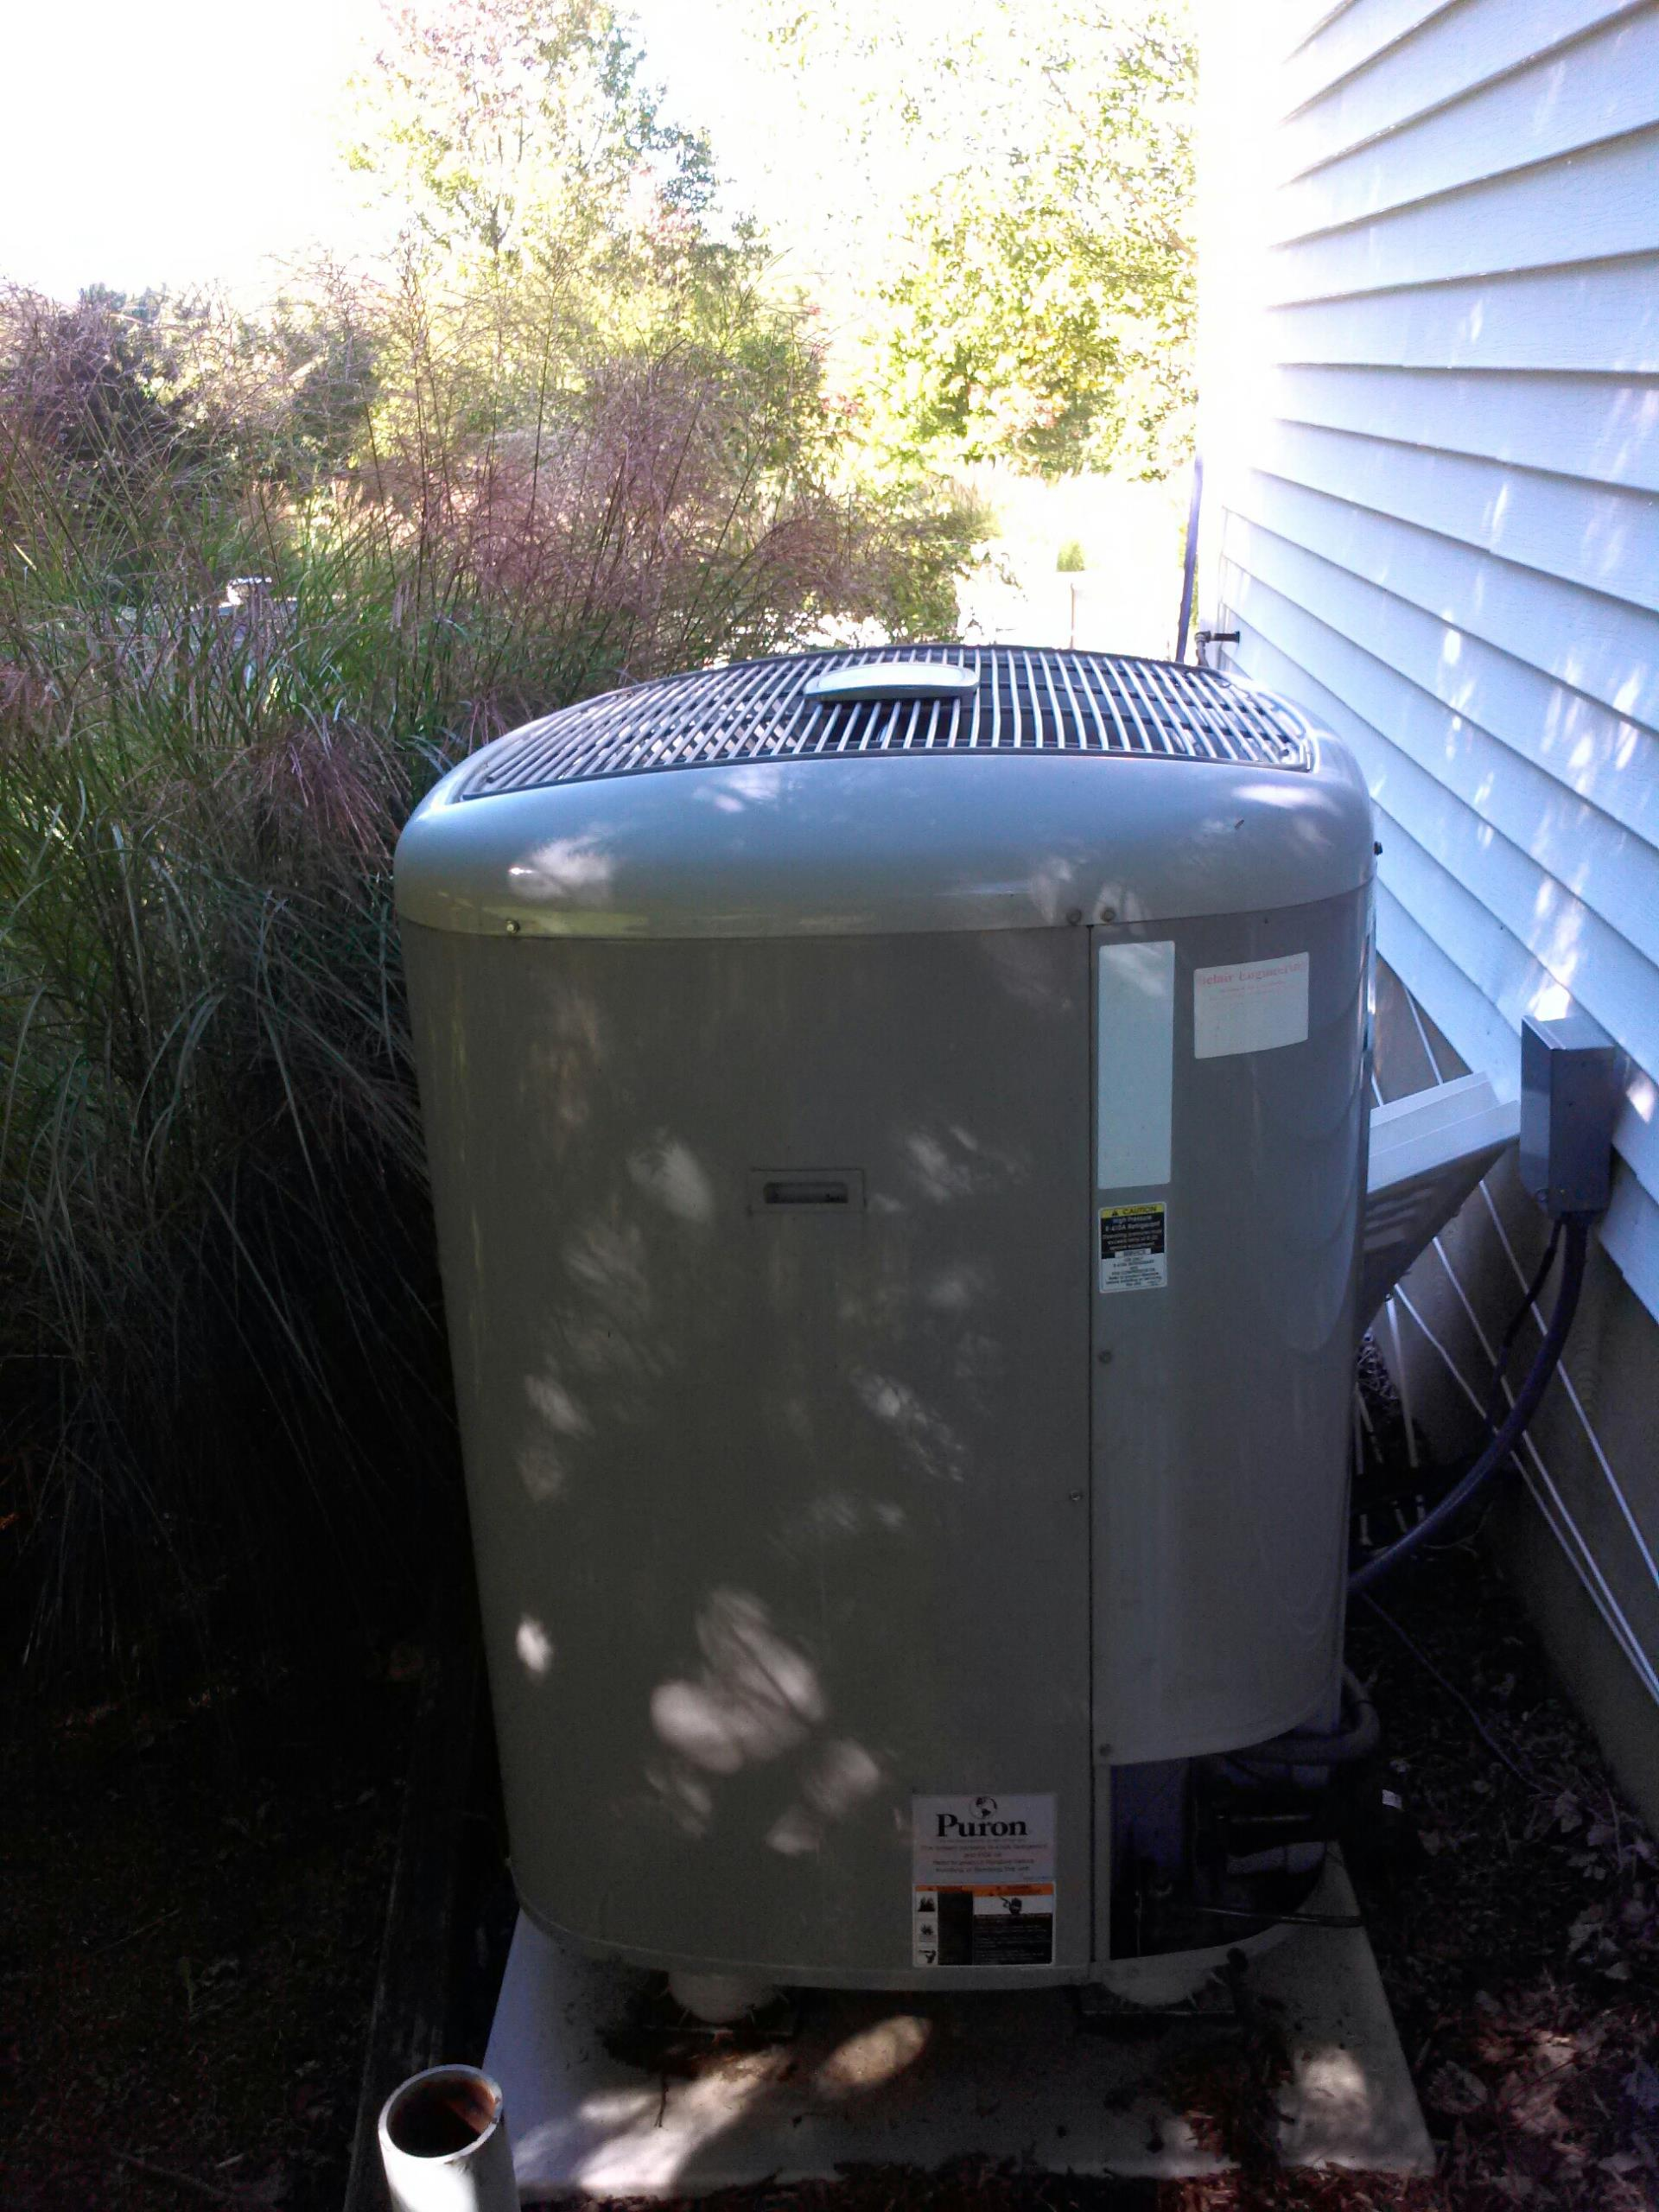 Gambrills, MD - Carrier heat pump electric furnace heating system & Aprilaire whole house humidifier installation repair service call in Gambrills Maryland 21054